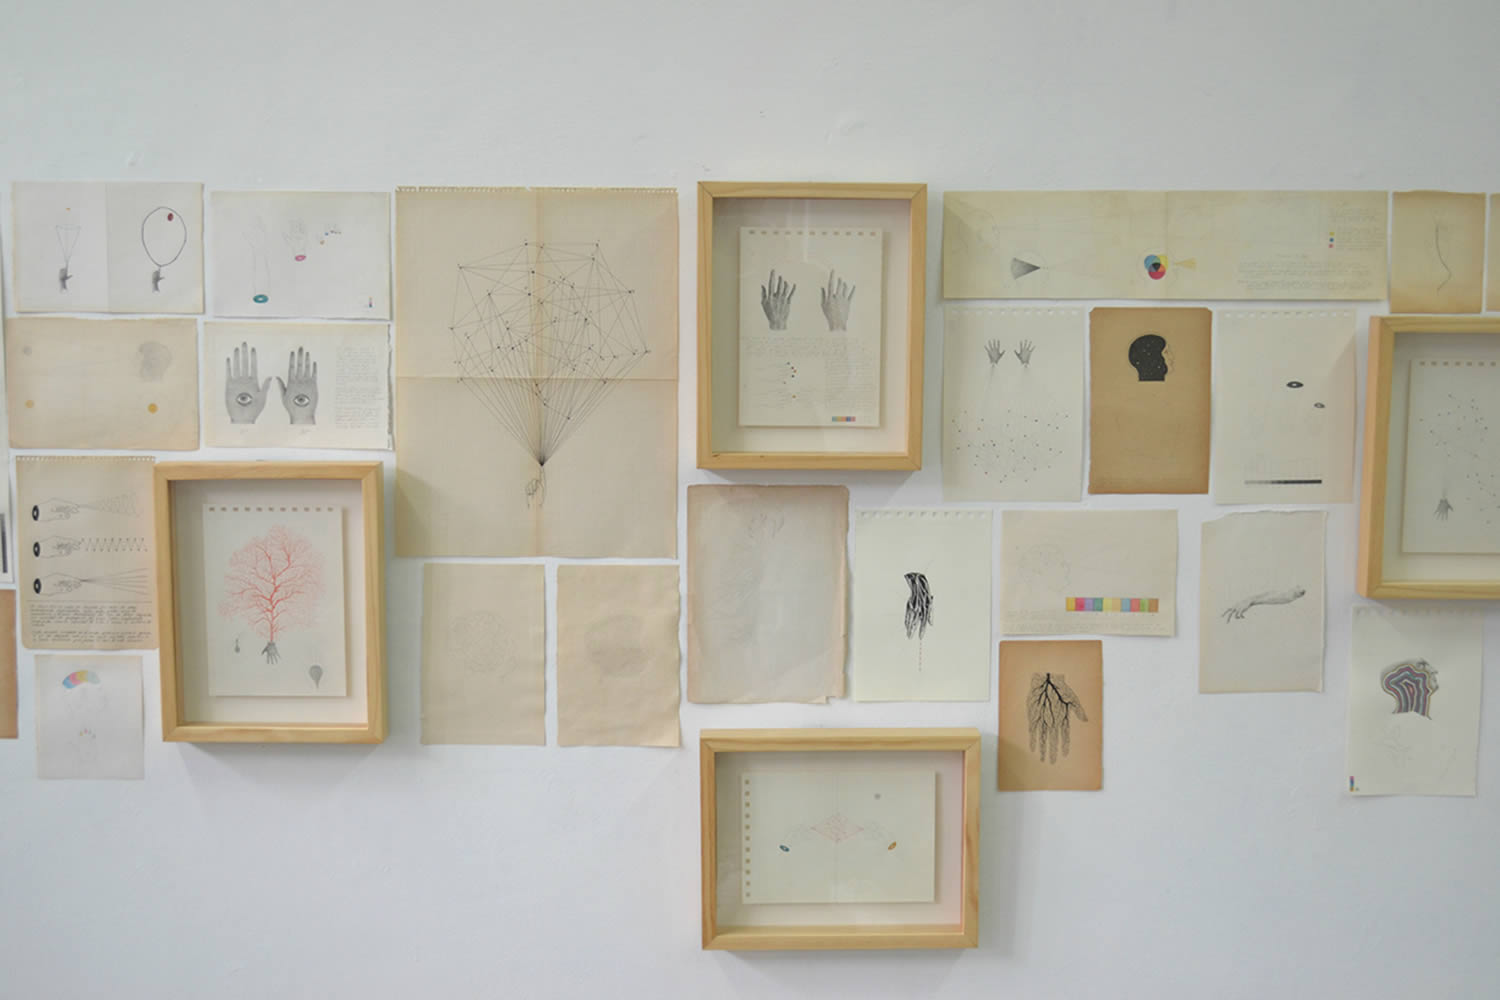 various drawings on wall, exhibition